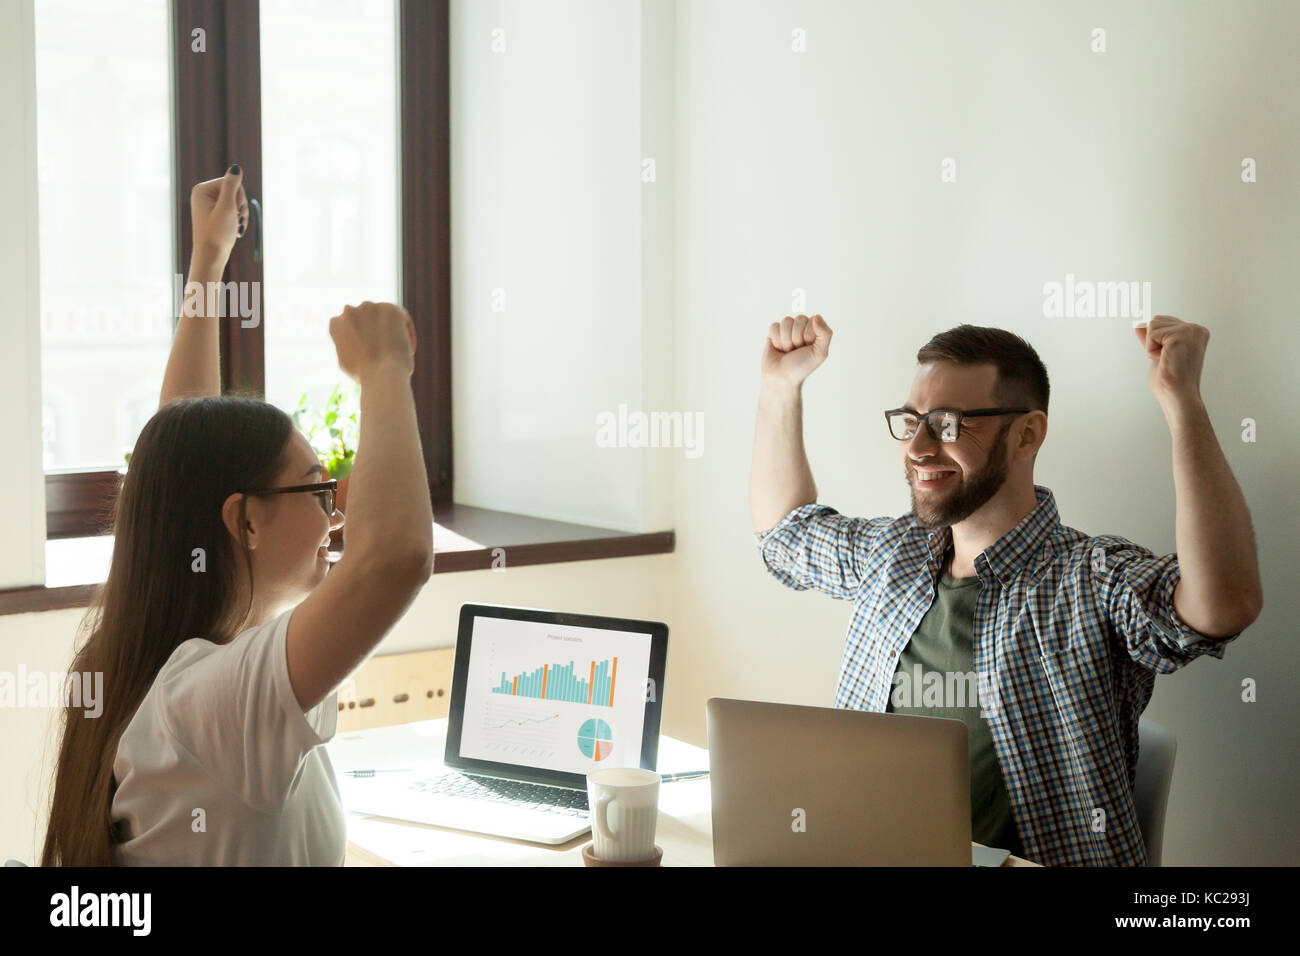 Finding a solution concept. Two businesspeople rising arms in winning gesture, rising stats on their laptop. - Stock Image